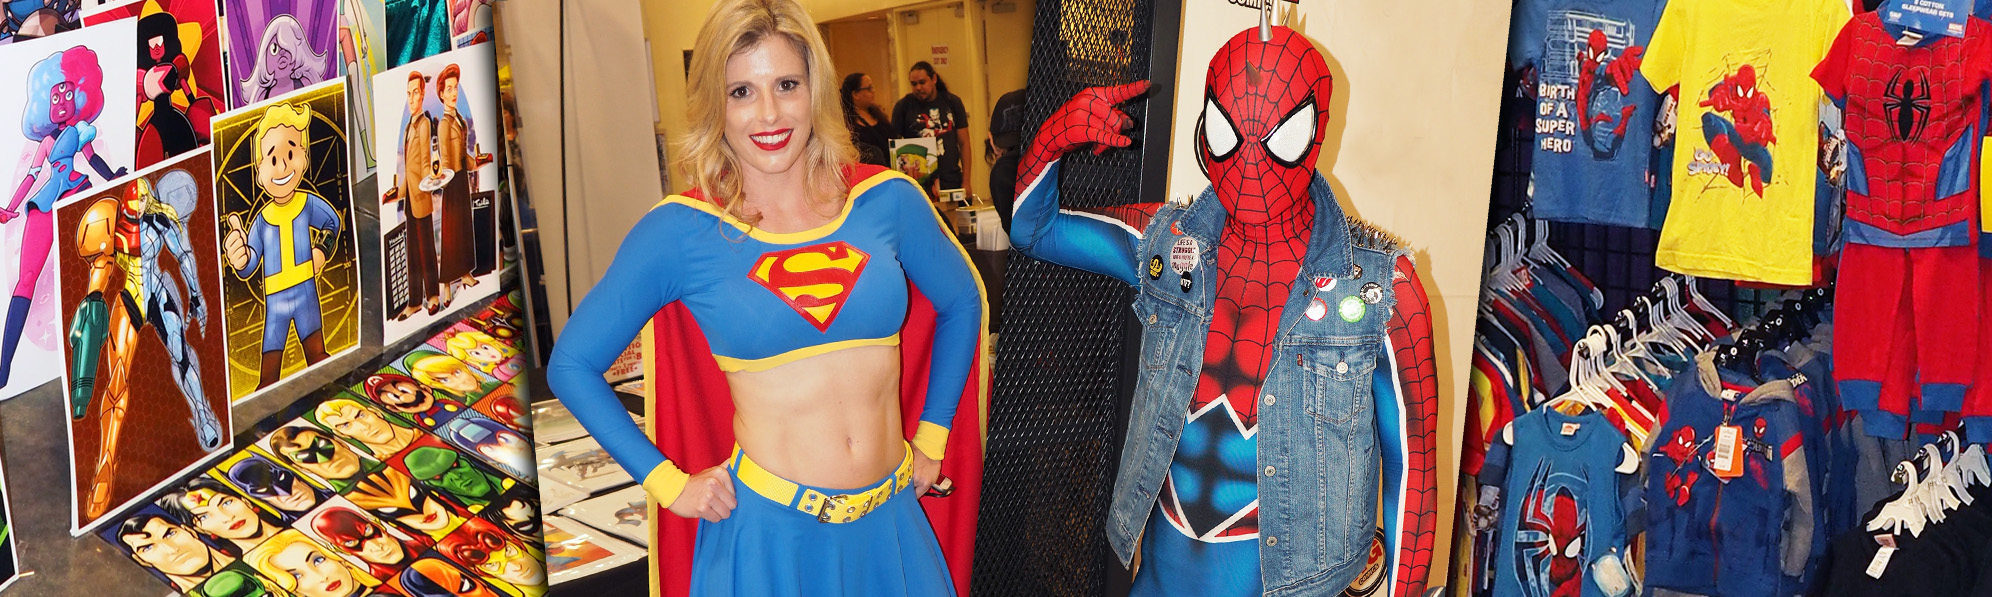 Paradise City Comic-Con en Fort Lauderdale